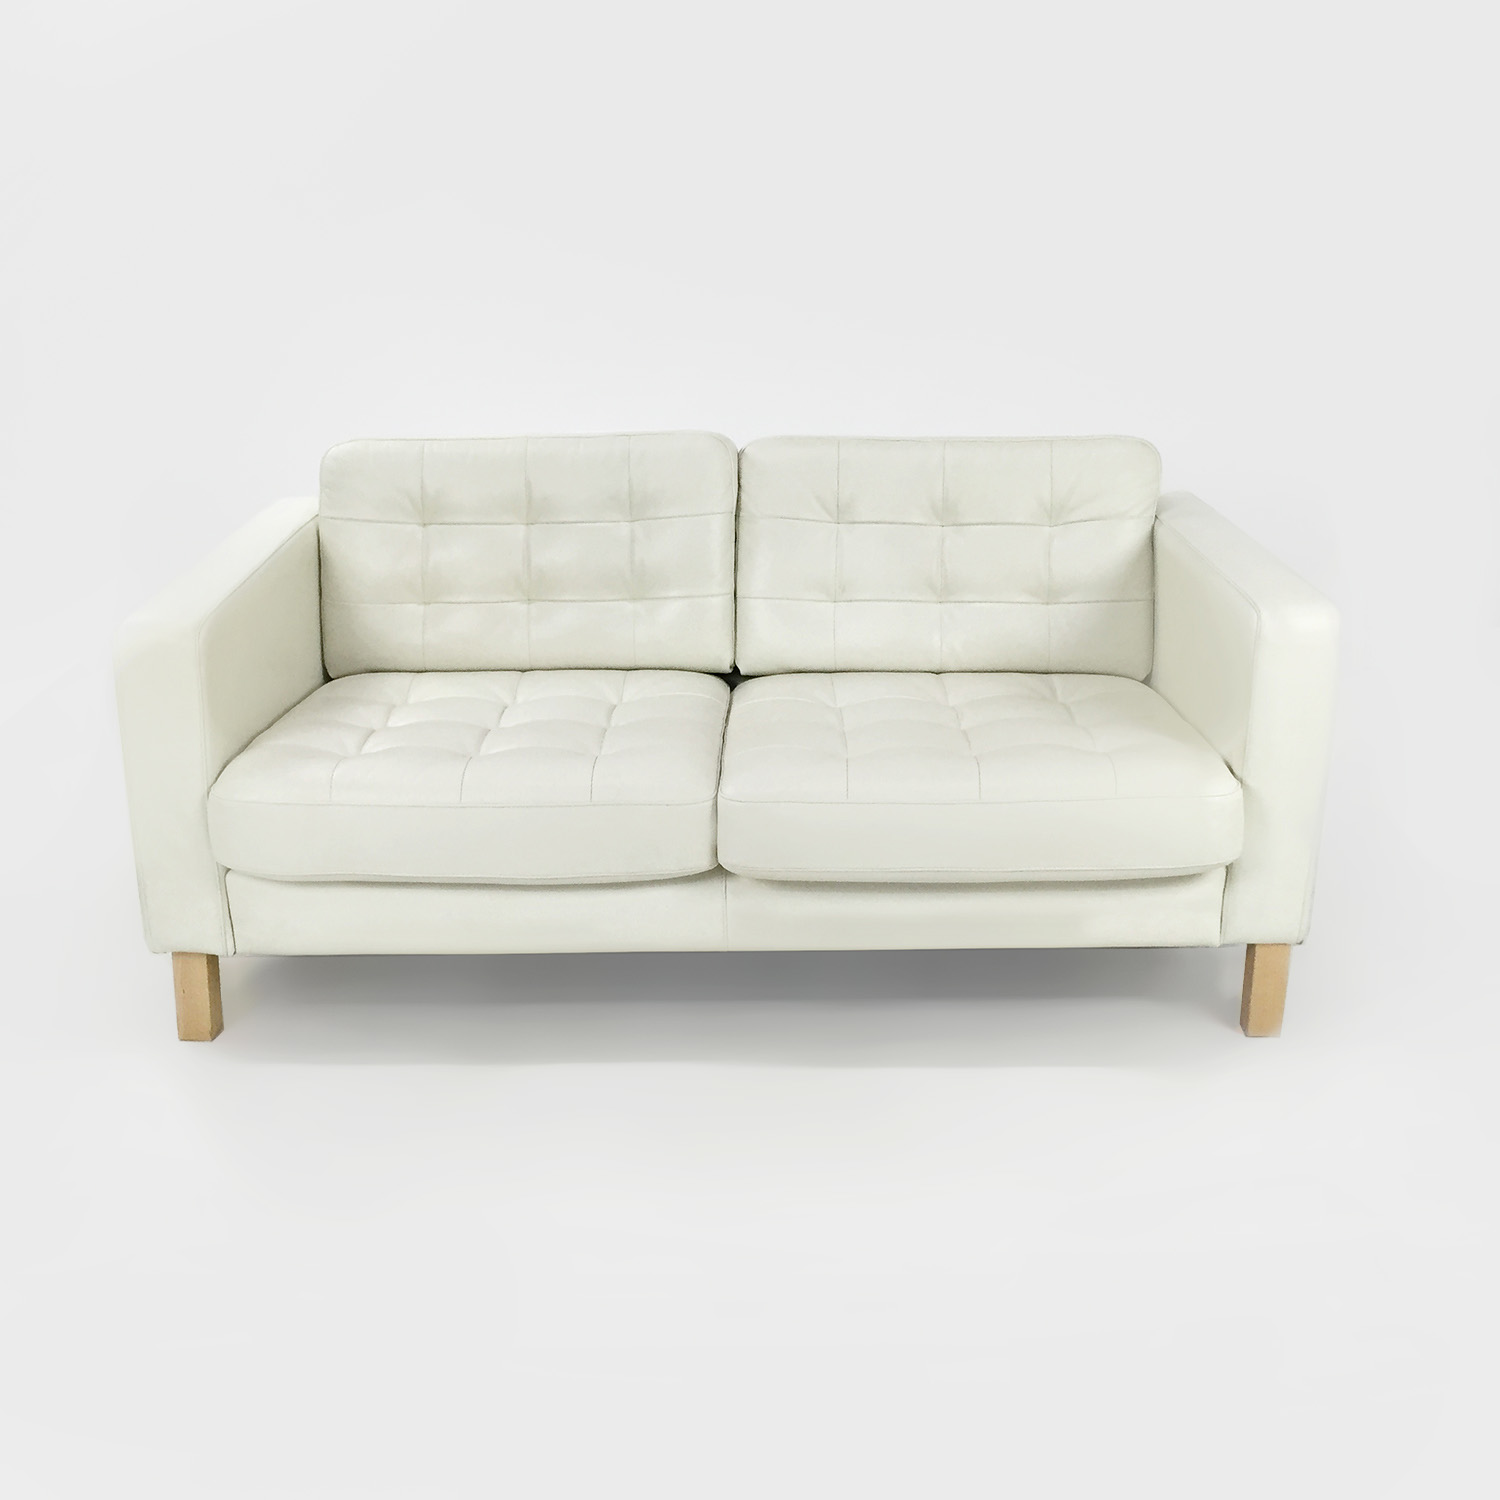 Off White Leather Sofa Luxury Off White Leather Sofa 66 On Modern Ideas With Thesofa